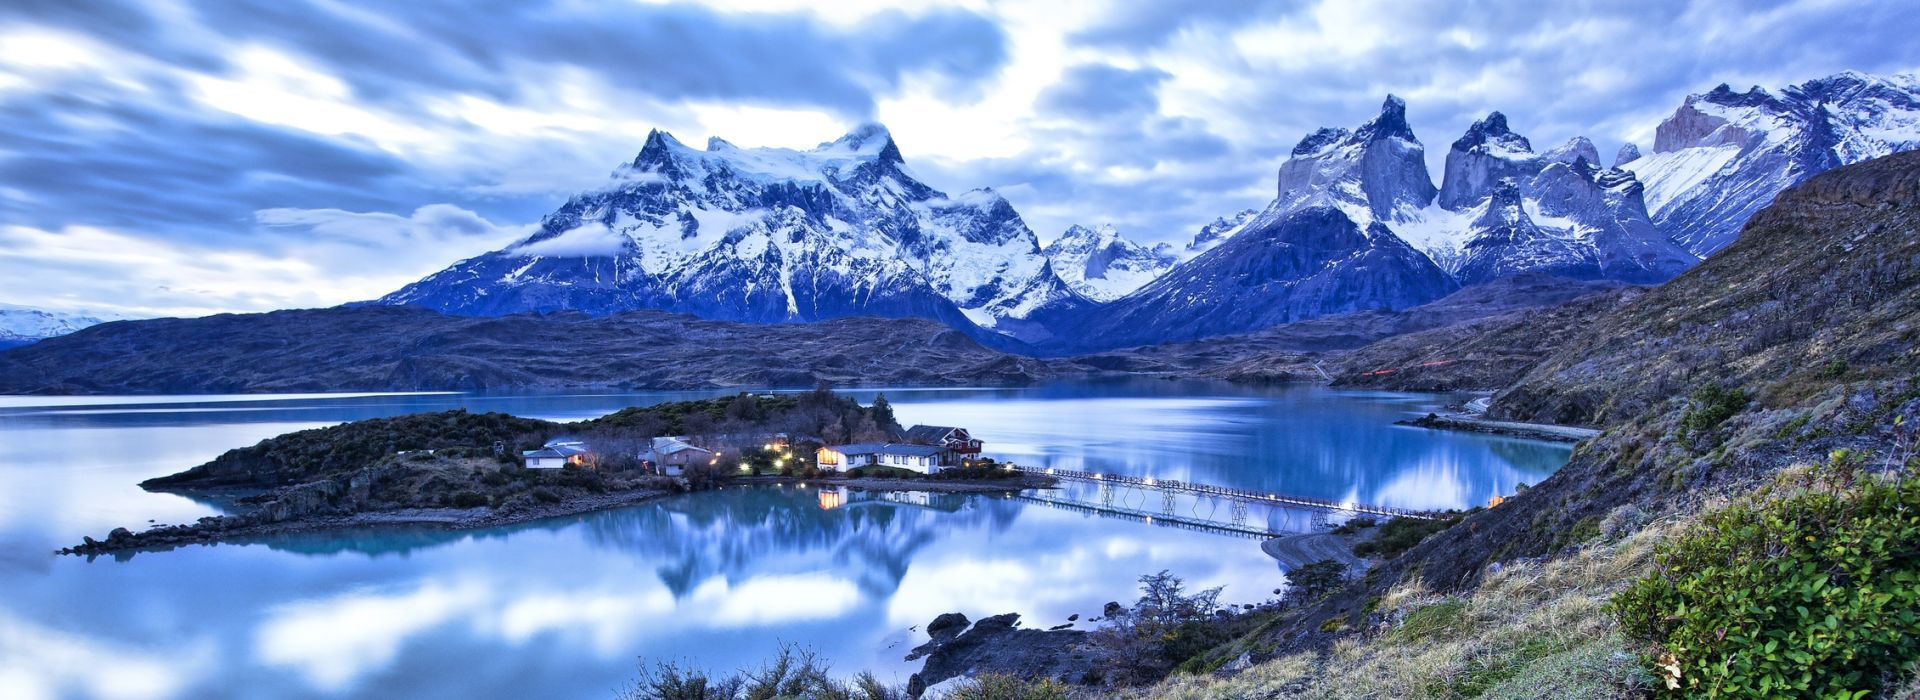 Sightseeing Tours in Chile